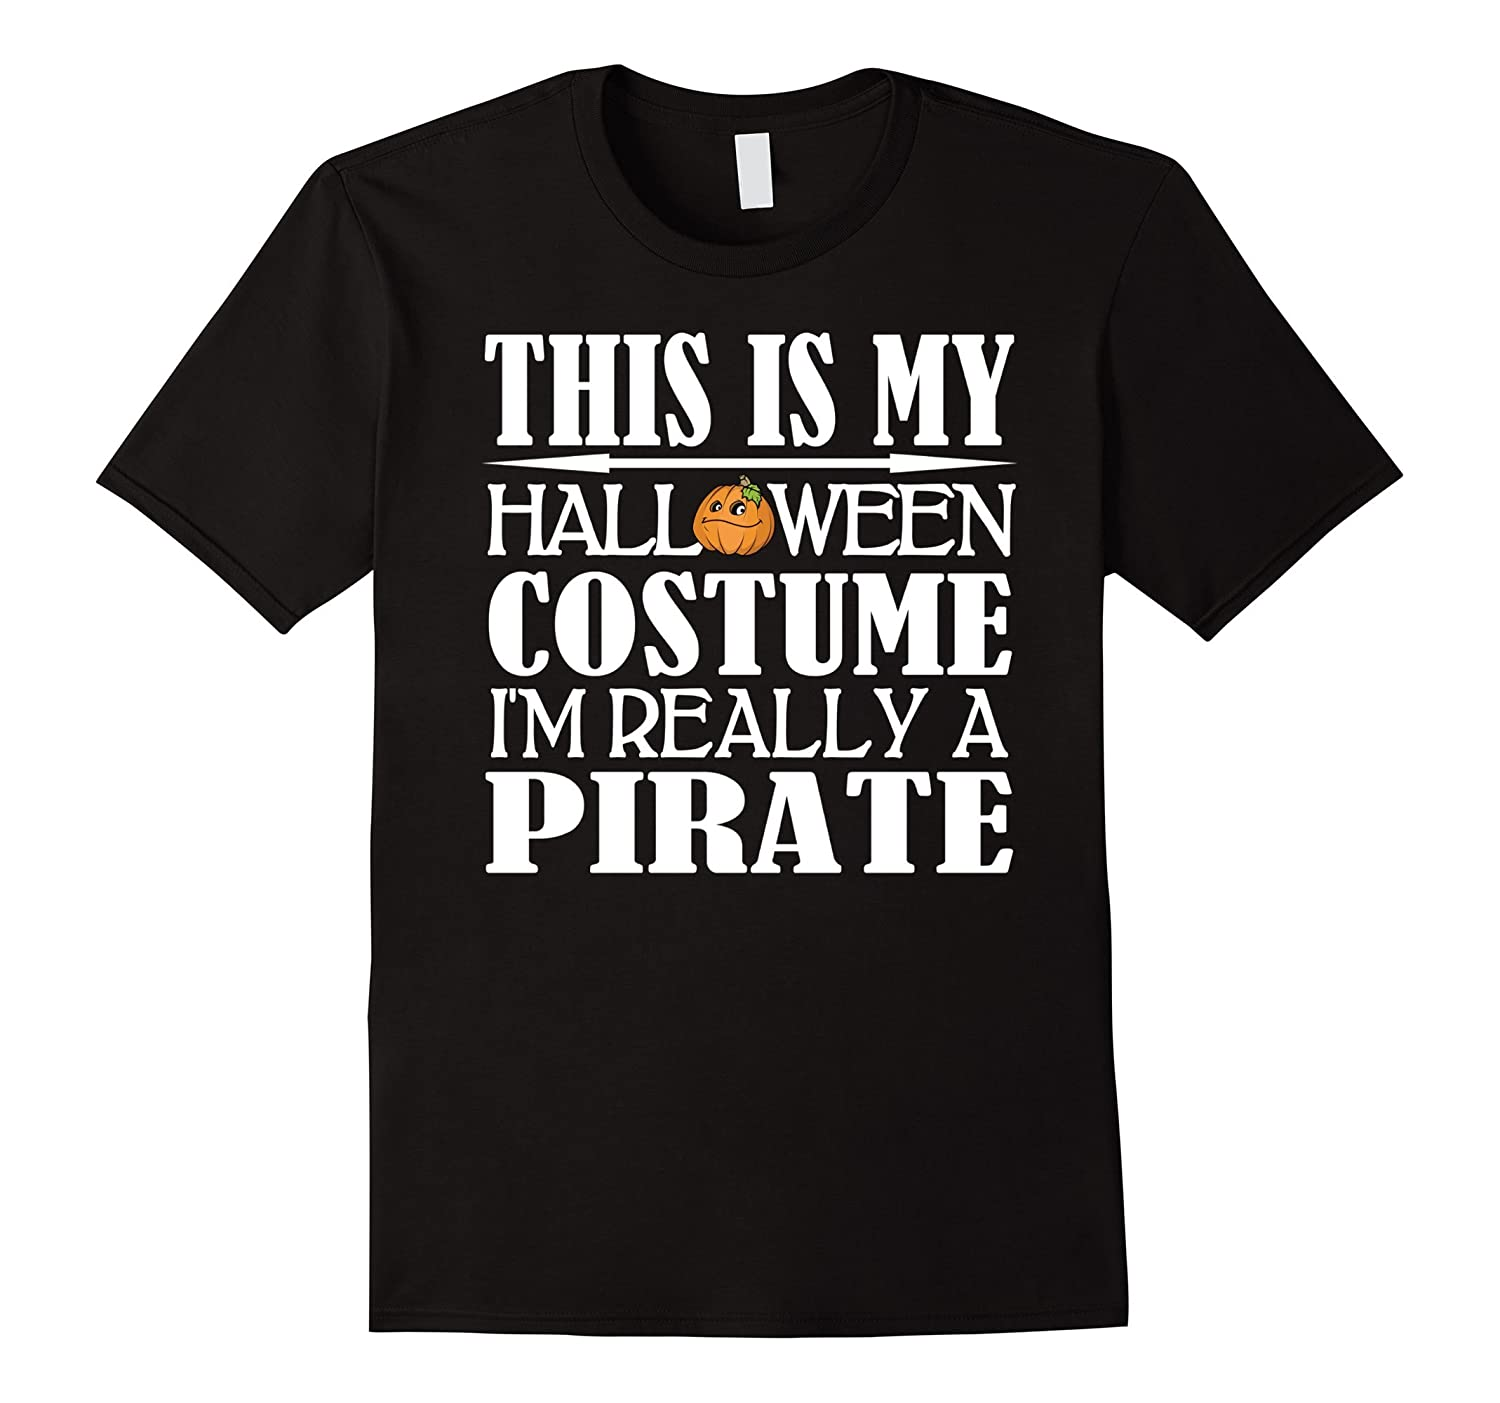 Pirate Halloween Costume Shirt - Men Women Youth Sizes